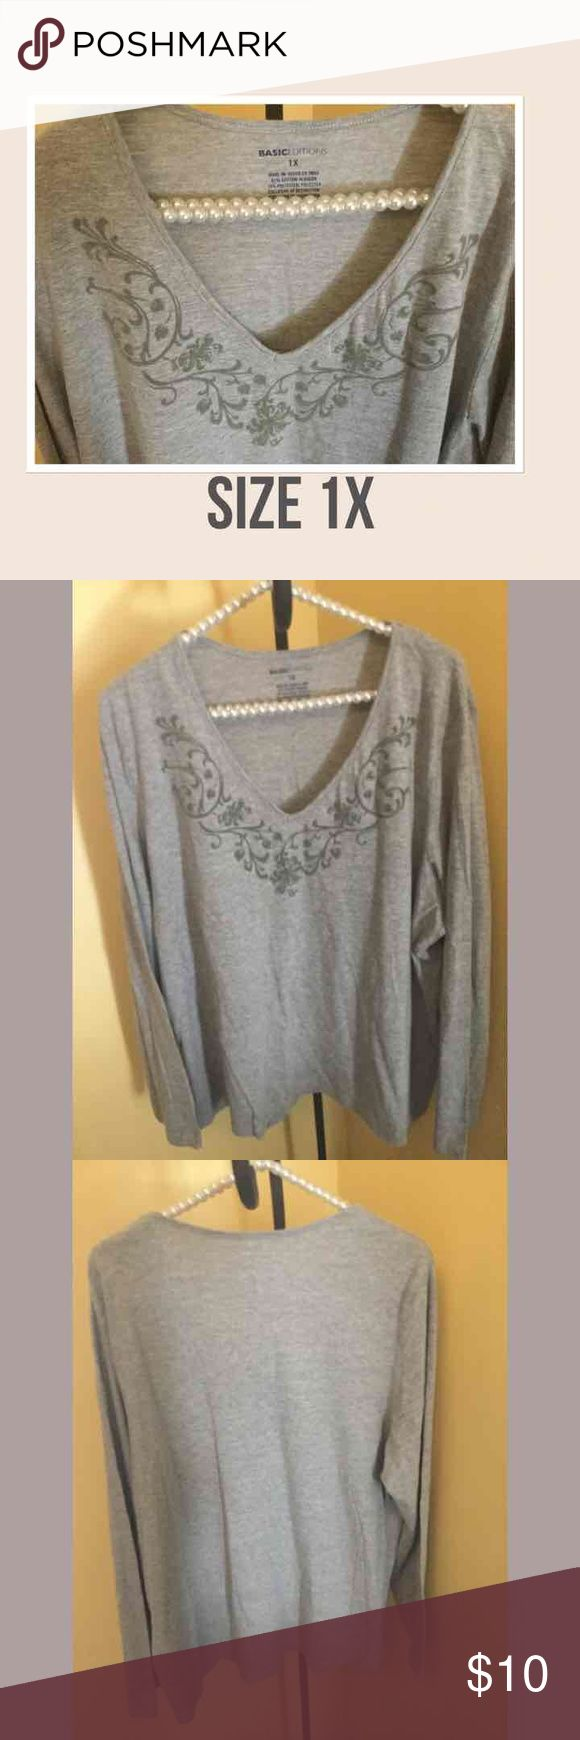 Women's Grey Shirt Women's Grey Shirt   Con-S100  Freshly laundered!  ♡GOD BLESS♡ ☆BUNDLE AND SAVE☆ Basic Edition Tops Blouses